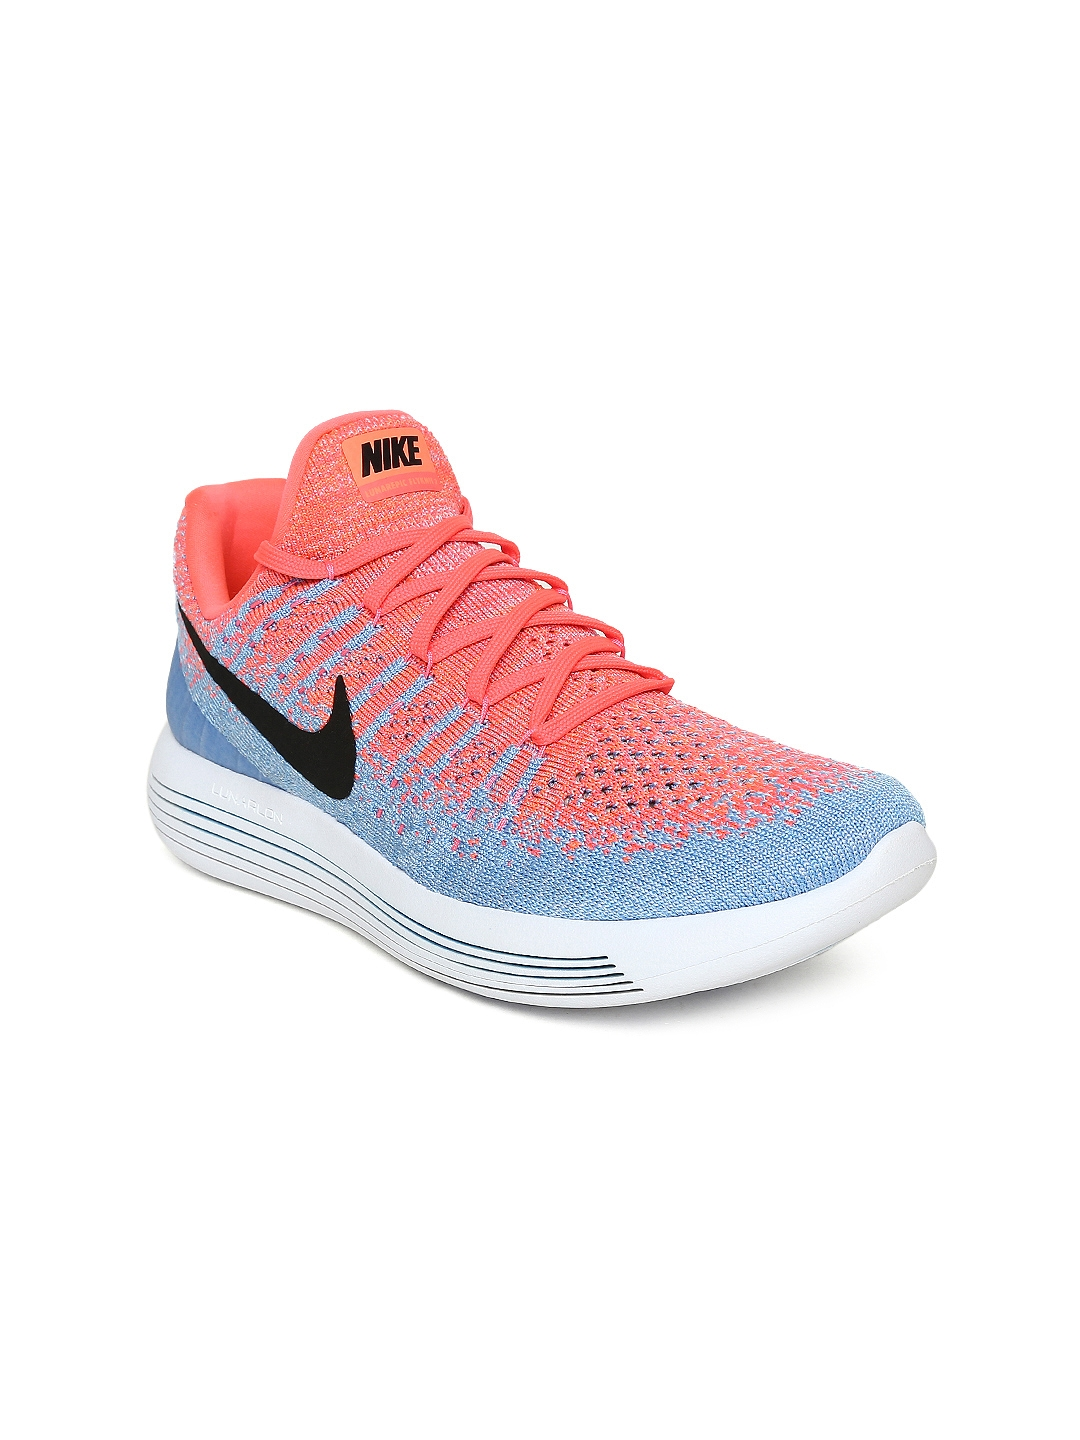 the latest 089a6 baf44 Nike Women Blue   Coral Pink LUNAREPIC LOW FLYKNIT 2 Running Shoes